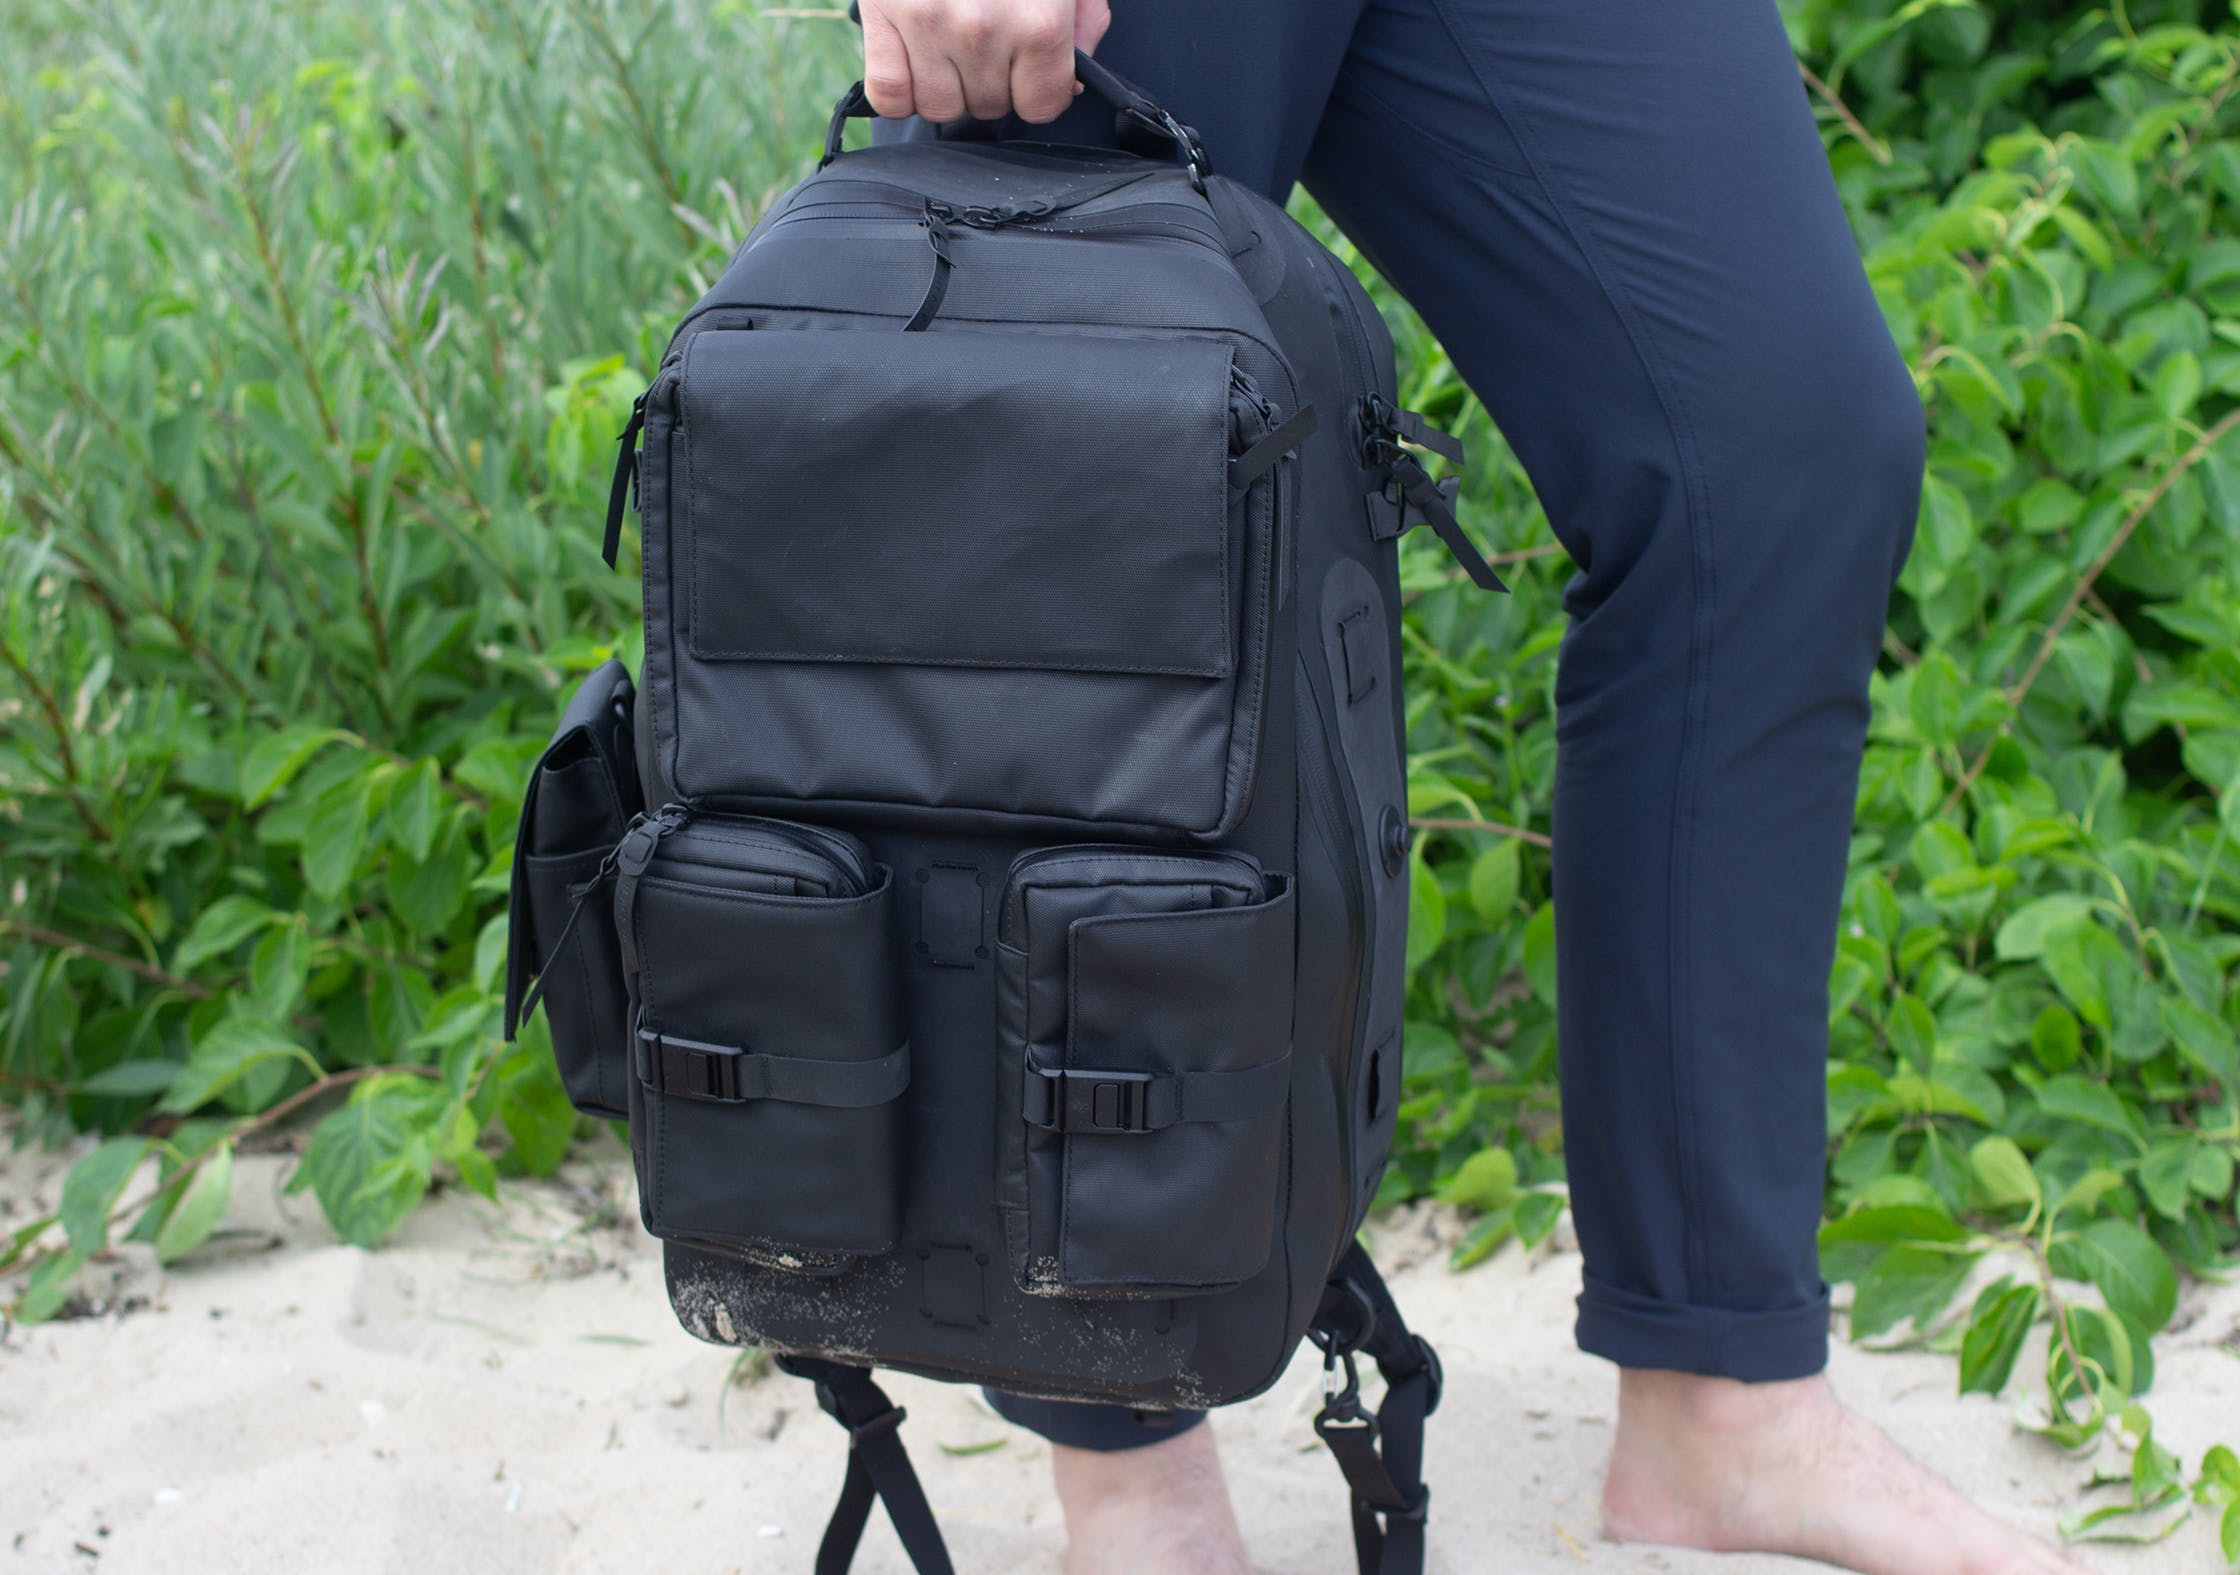 b6d1831d12c7 Black Ember Citadel Modular Backpack In Northern Michigan